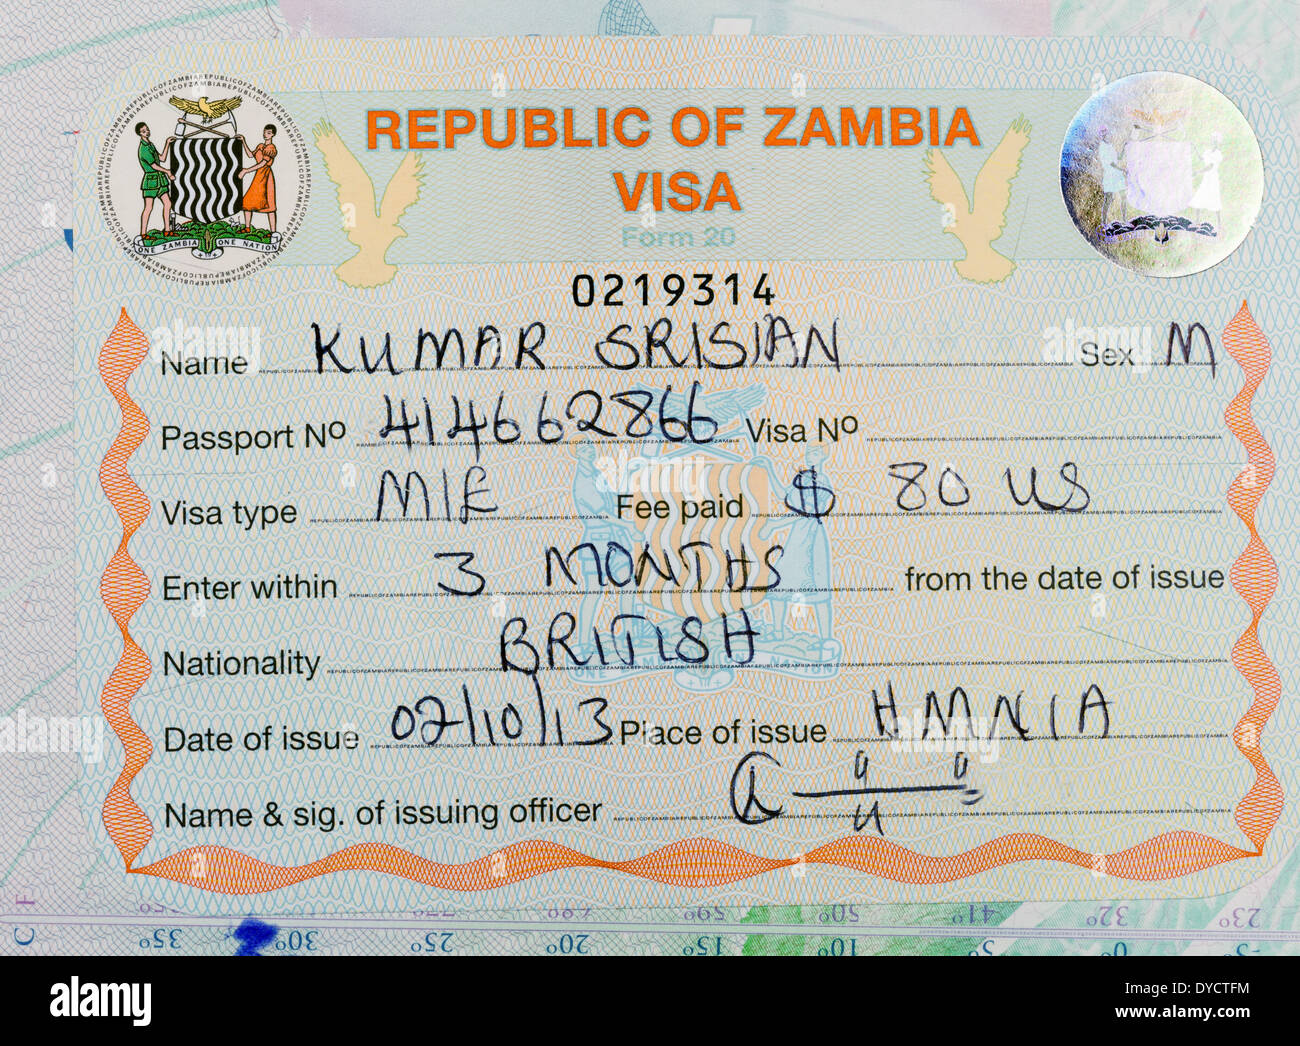 Sambia Reisen  Ein Sambischer Visum Stempel In Einen. Resume Summary Of Skills Examples. Curriculum Vitae Modelo Antiguo. Letter From Mother To Son. Resume Builder Sites. Sample Letterhead Templates Free. Cover Letter General Manager. Cover Letter For Resume When Changing Careers. Lebenslauf Englisch Zeitraum